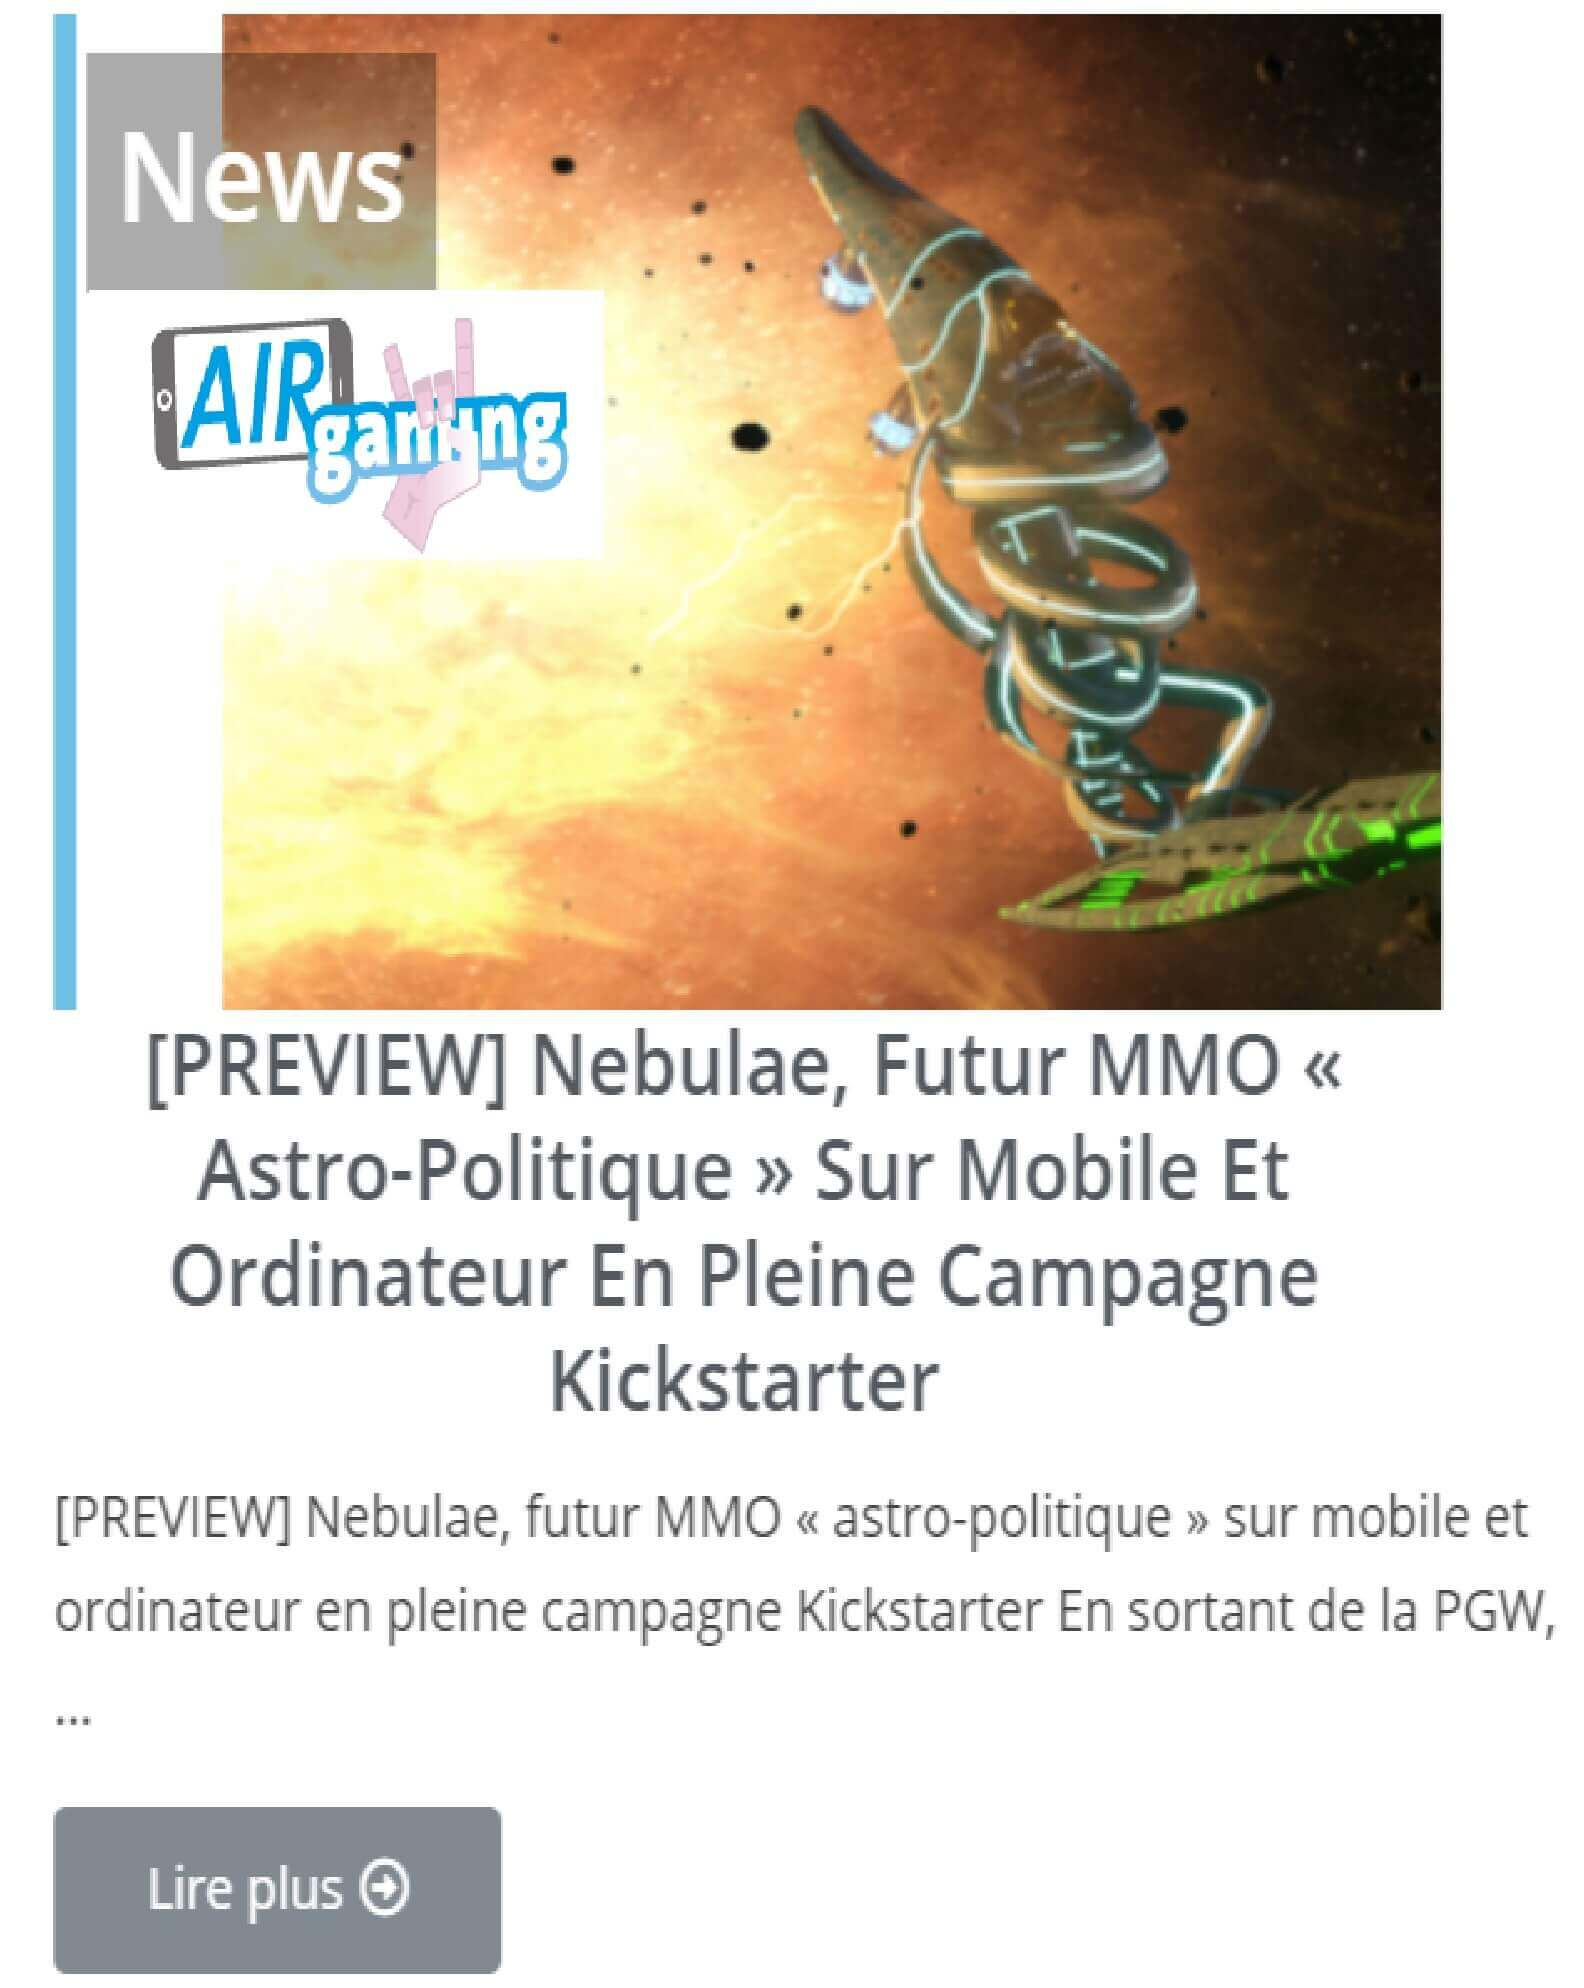 KS Nebulae Article Air gaming pastille low res